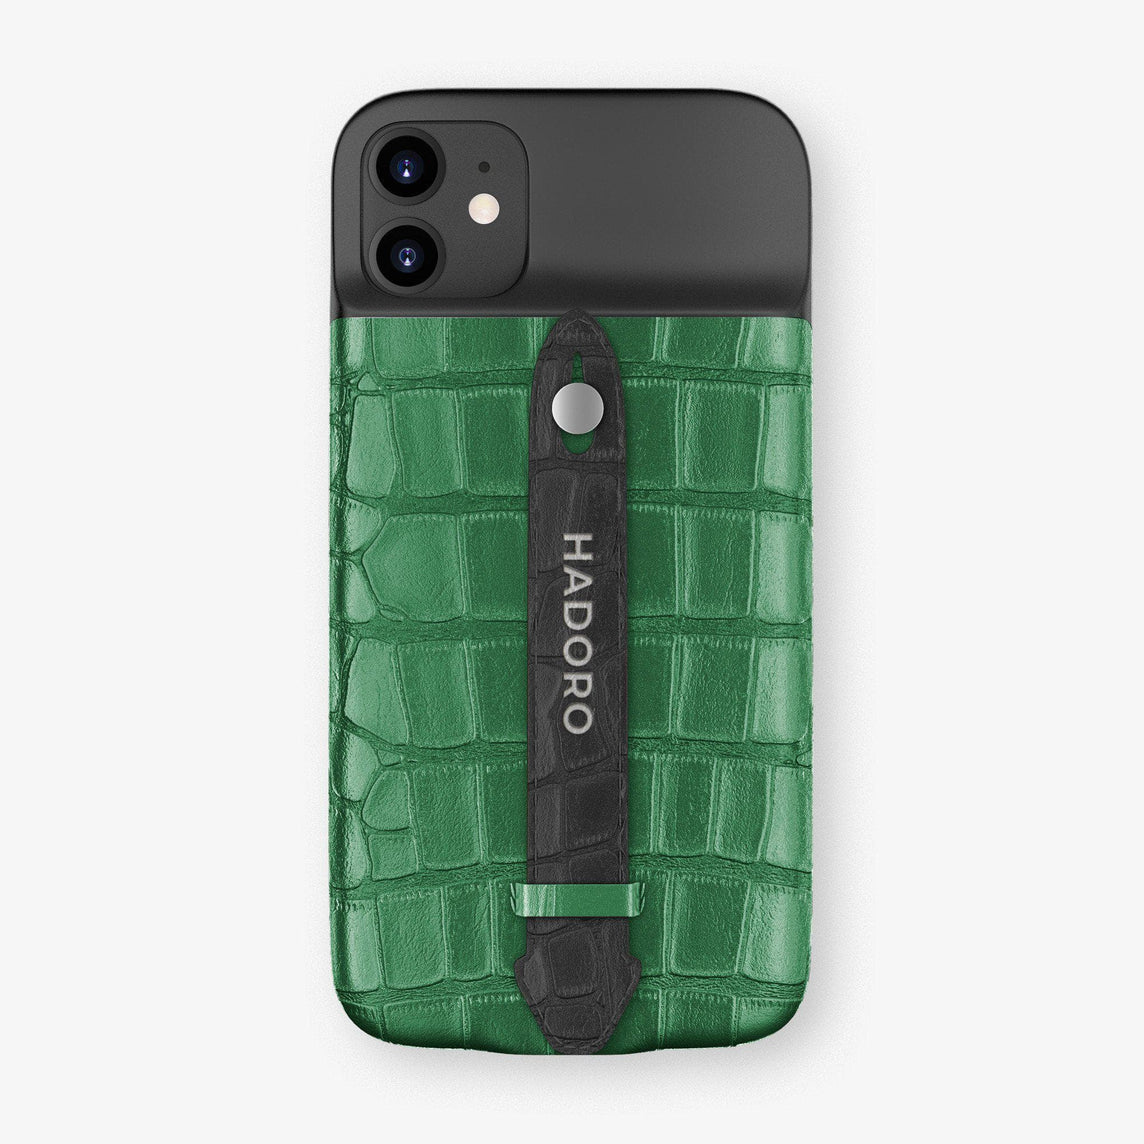 Alligator Battery Finger Case for iPhone 11 | Green Emerald/Black - Stainless Steel